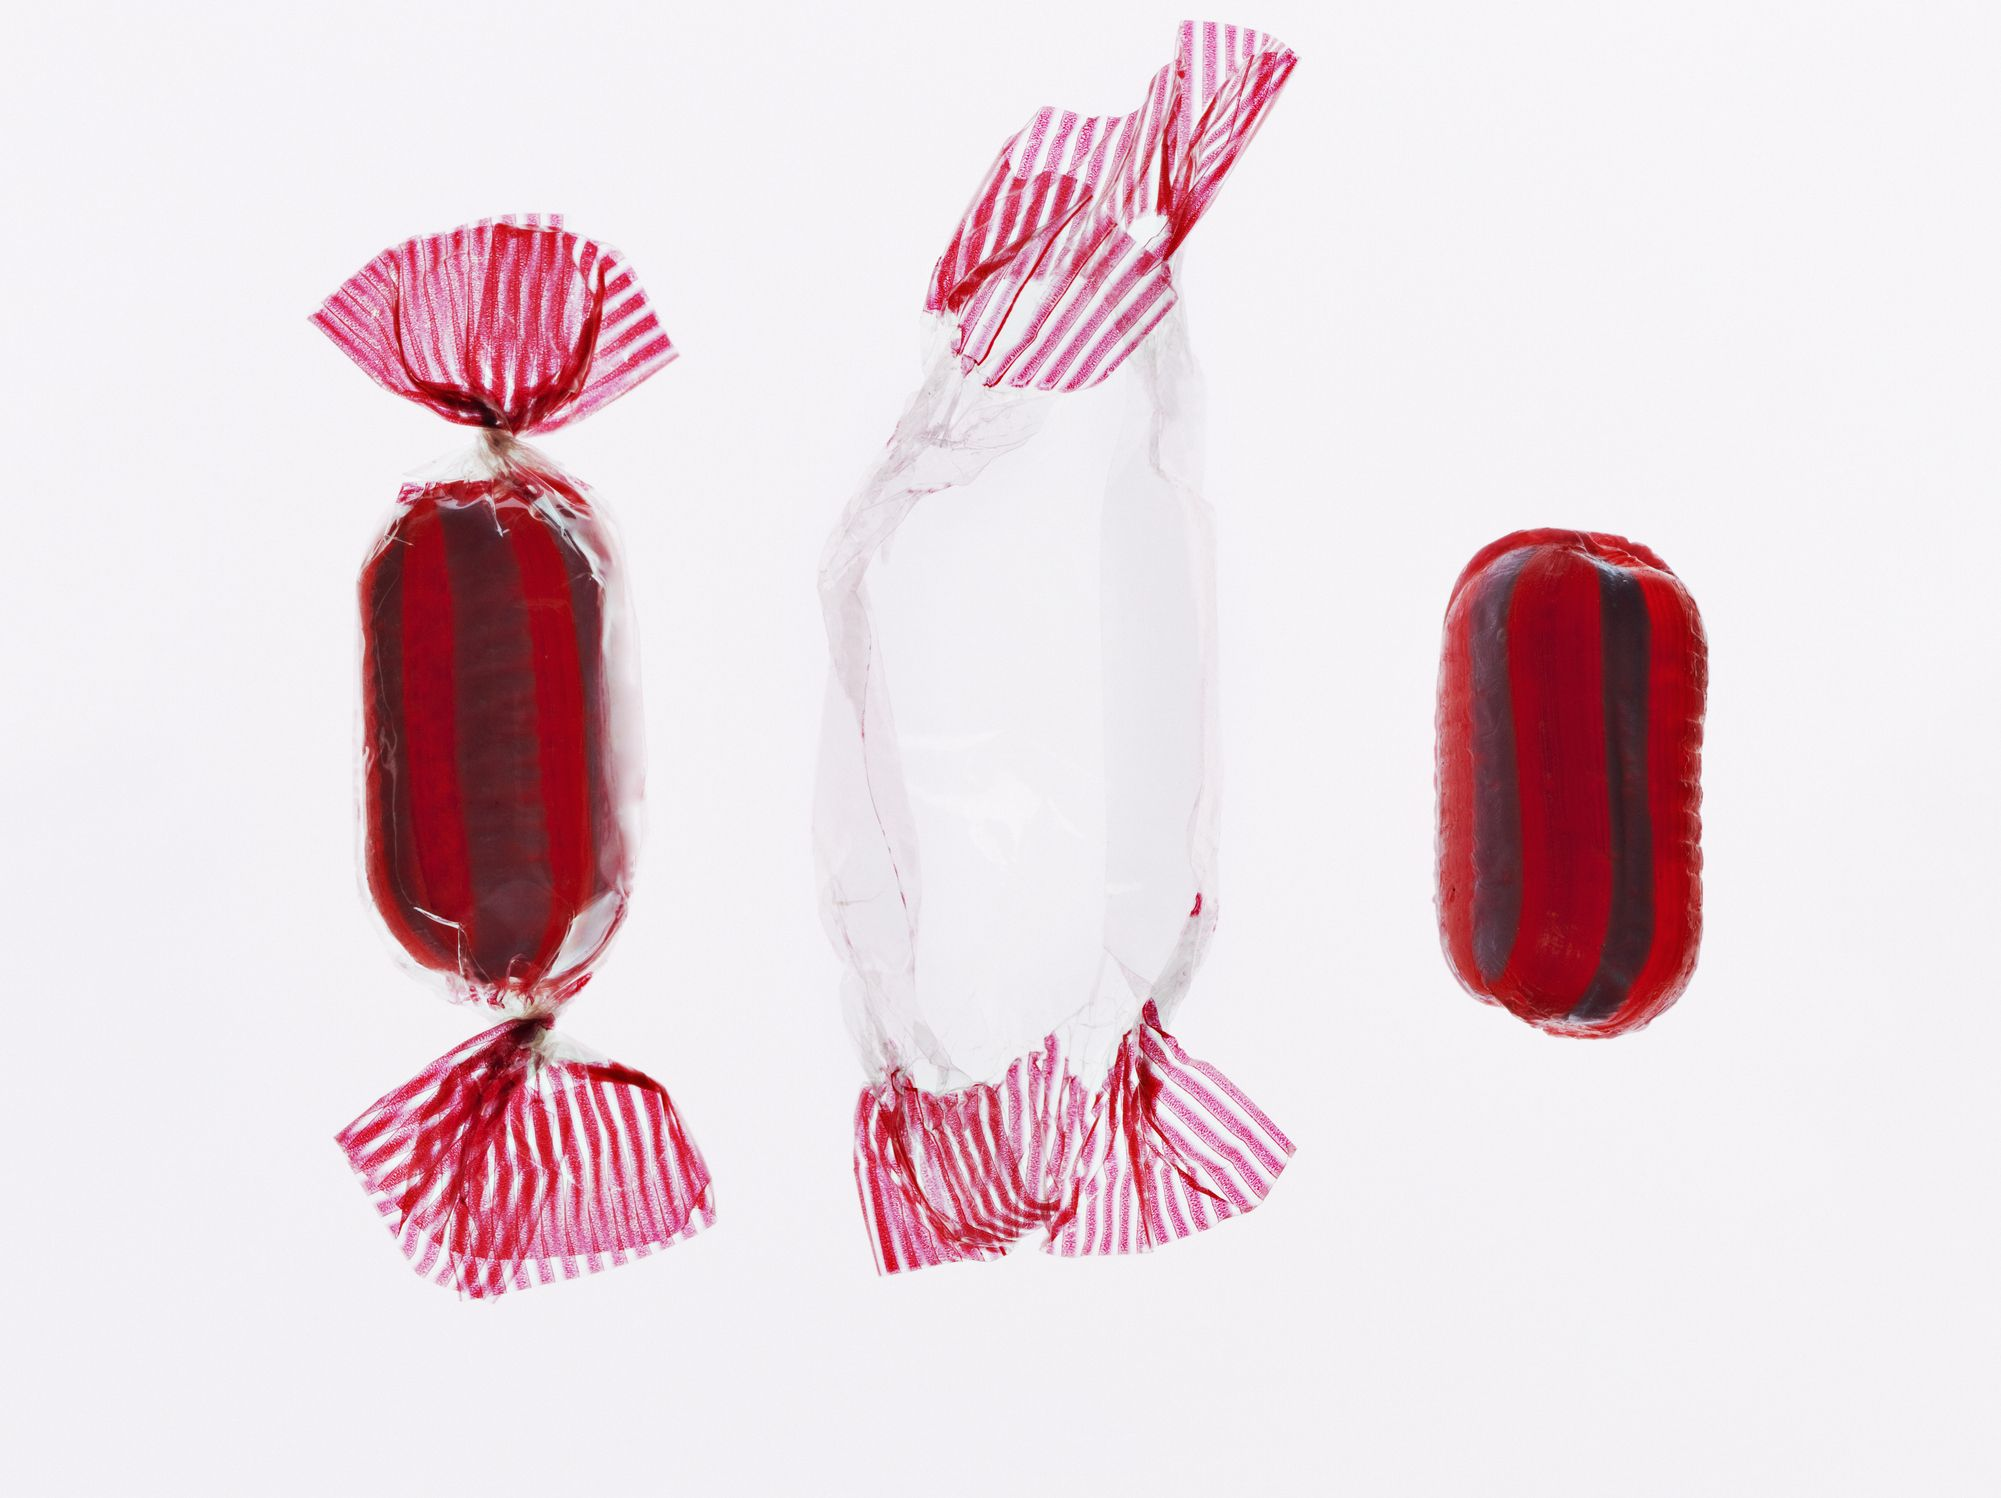 Wrapped and unwrapped hard candy